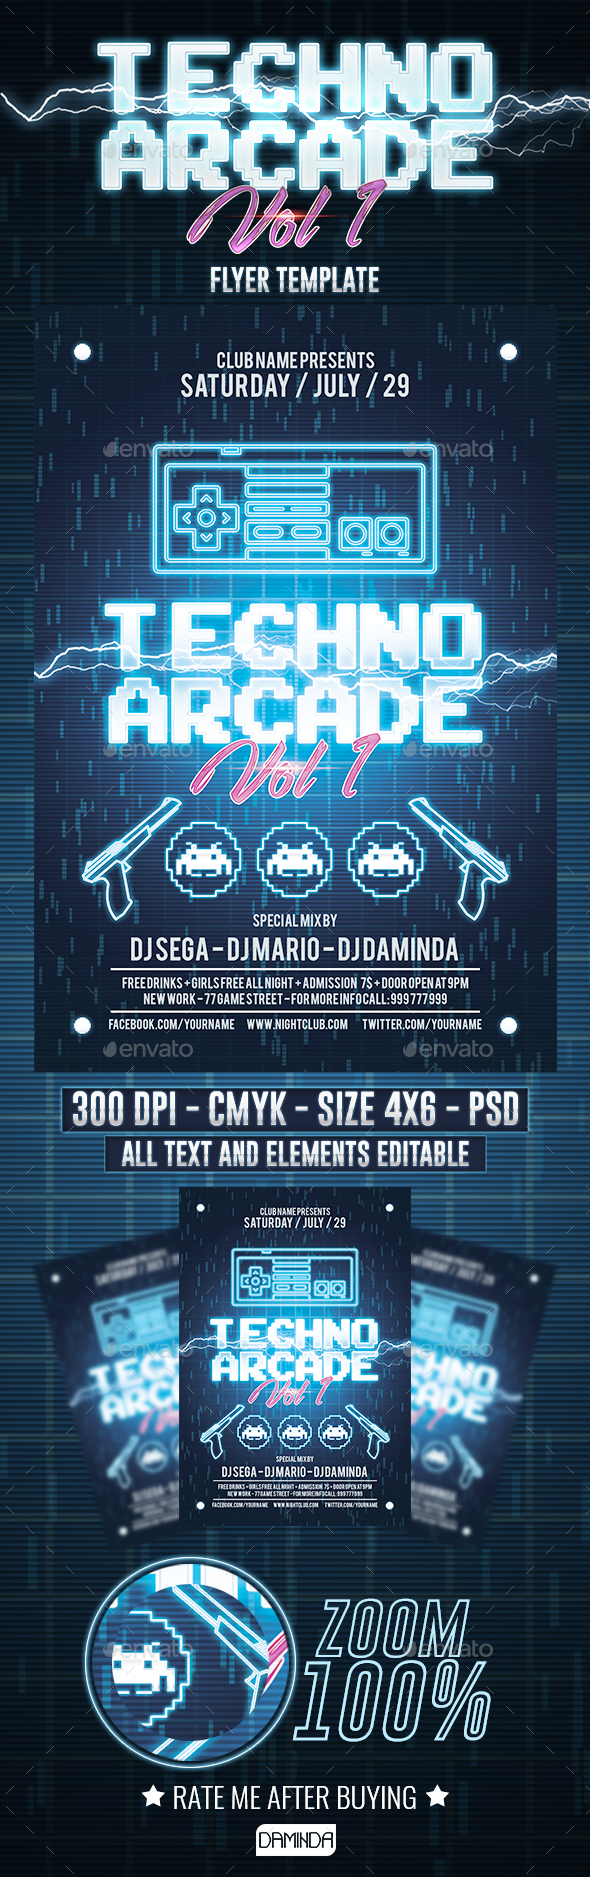 Techno Arcade 2 Flyer Template - Clubs & Parties Events